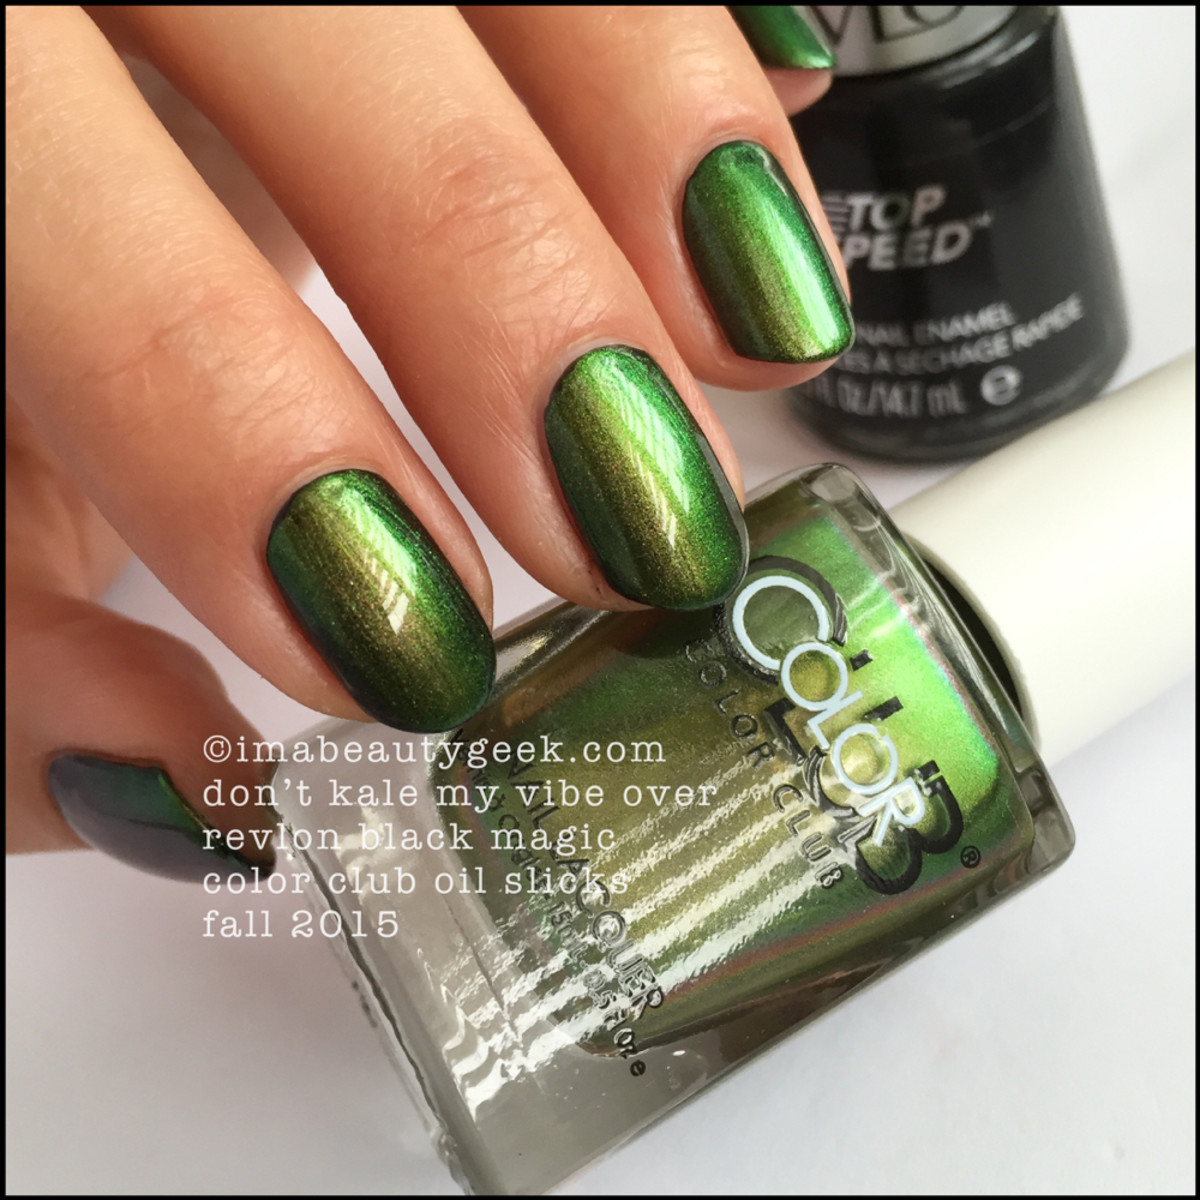 Color Club Oil Slicks_Color Club Dont Kale My Vibe over Black_3